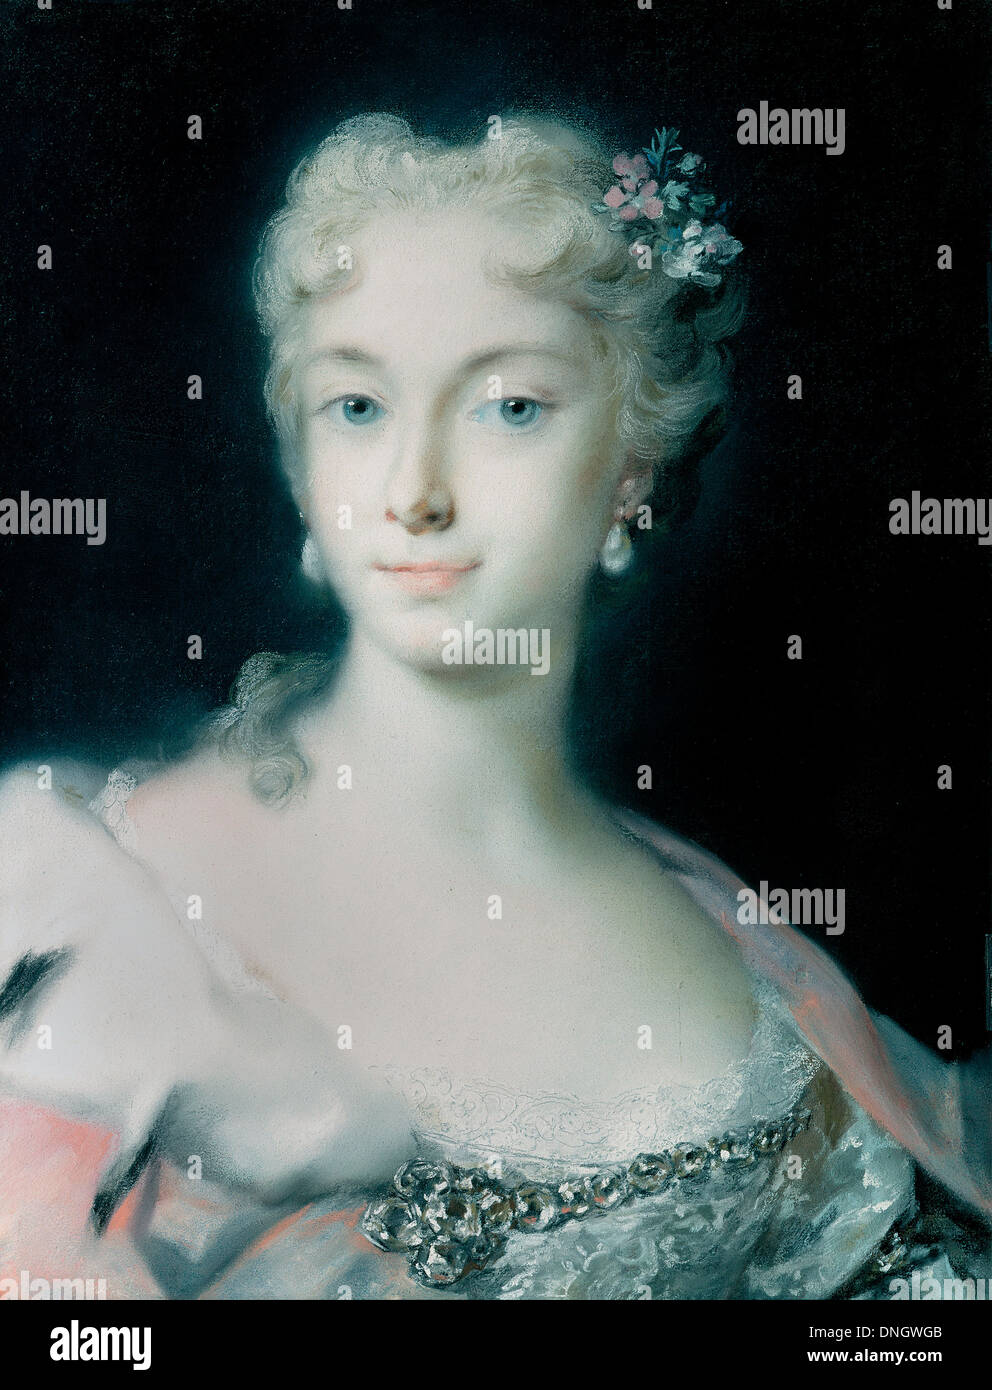 Rosalba Carriera, Maria Theresa, Archduchess of Habsburg 1730 Pastel on paper. Gemaldegalerie Alte Meister, Dresden, Germany. - Stock Image